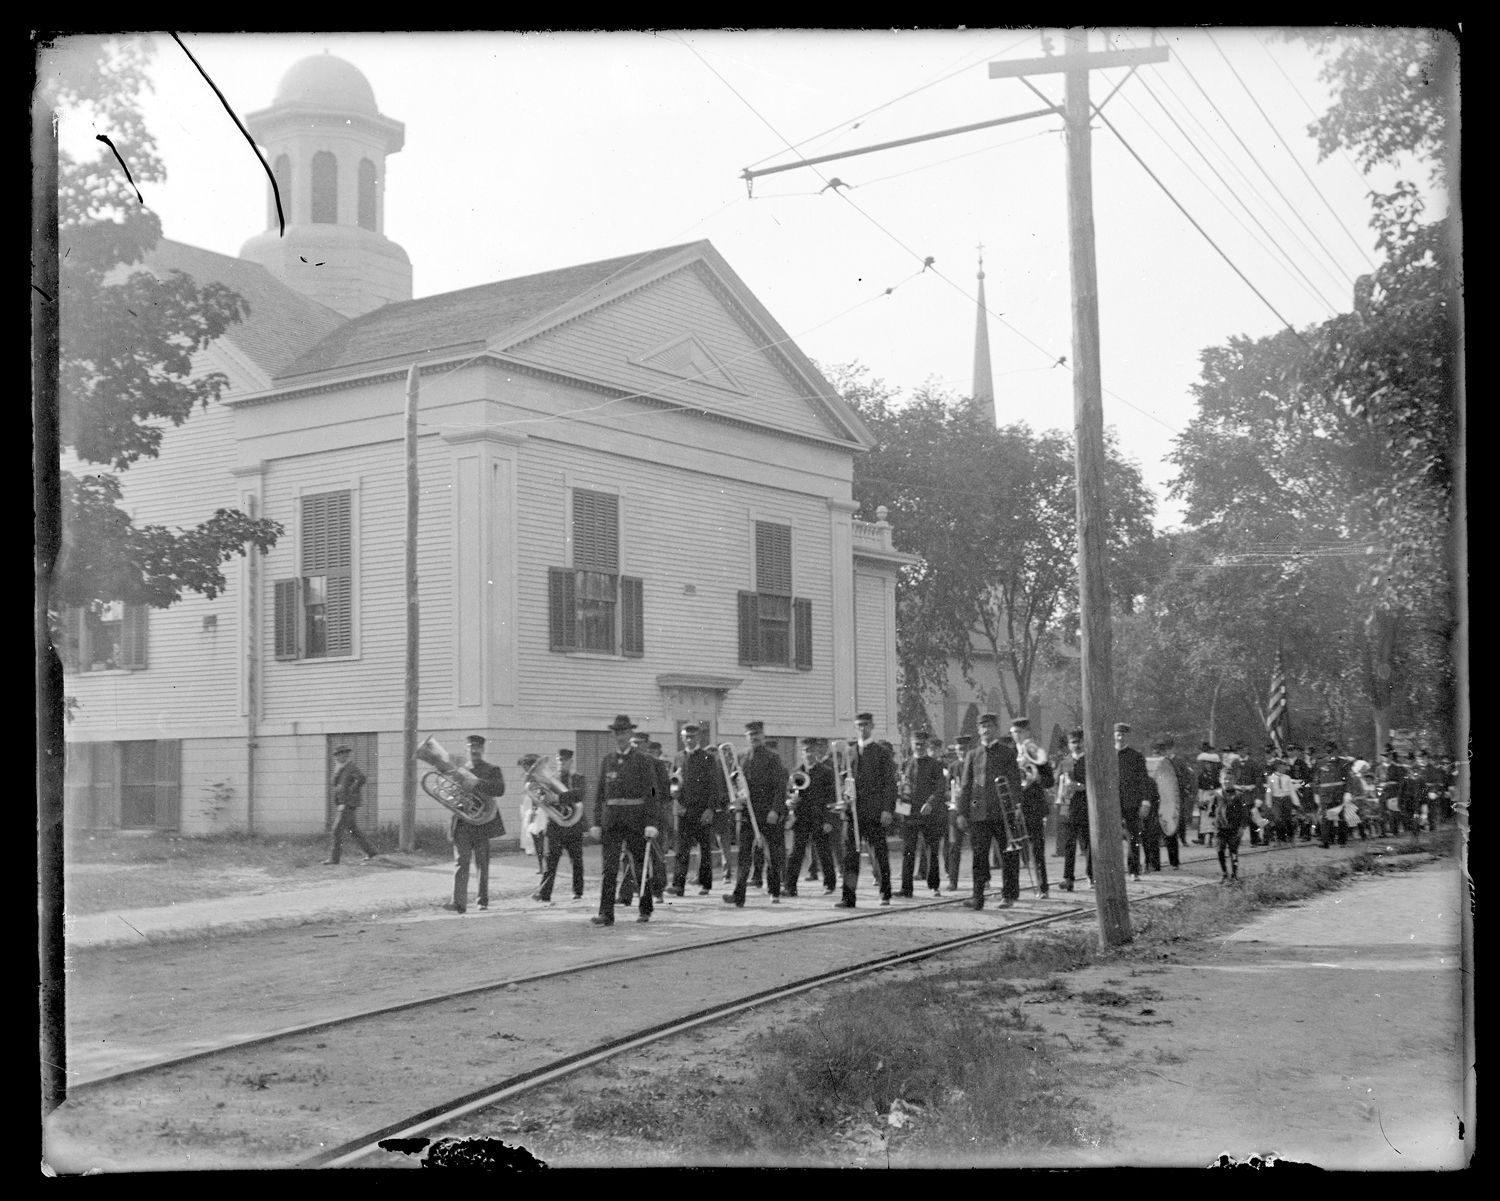 Band marching on Green Street, Kingston, 1903